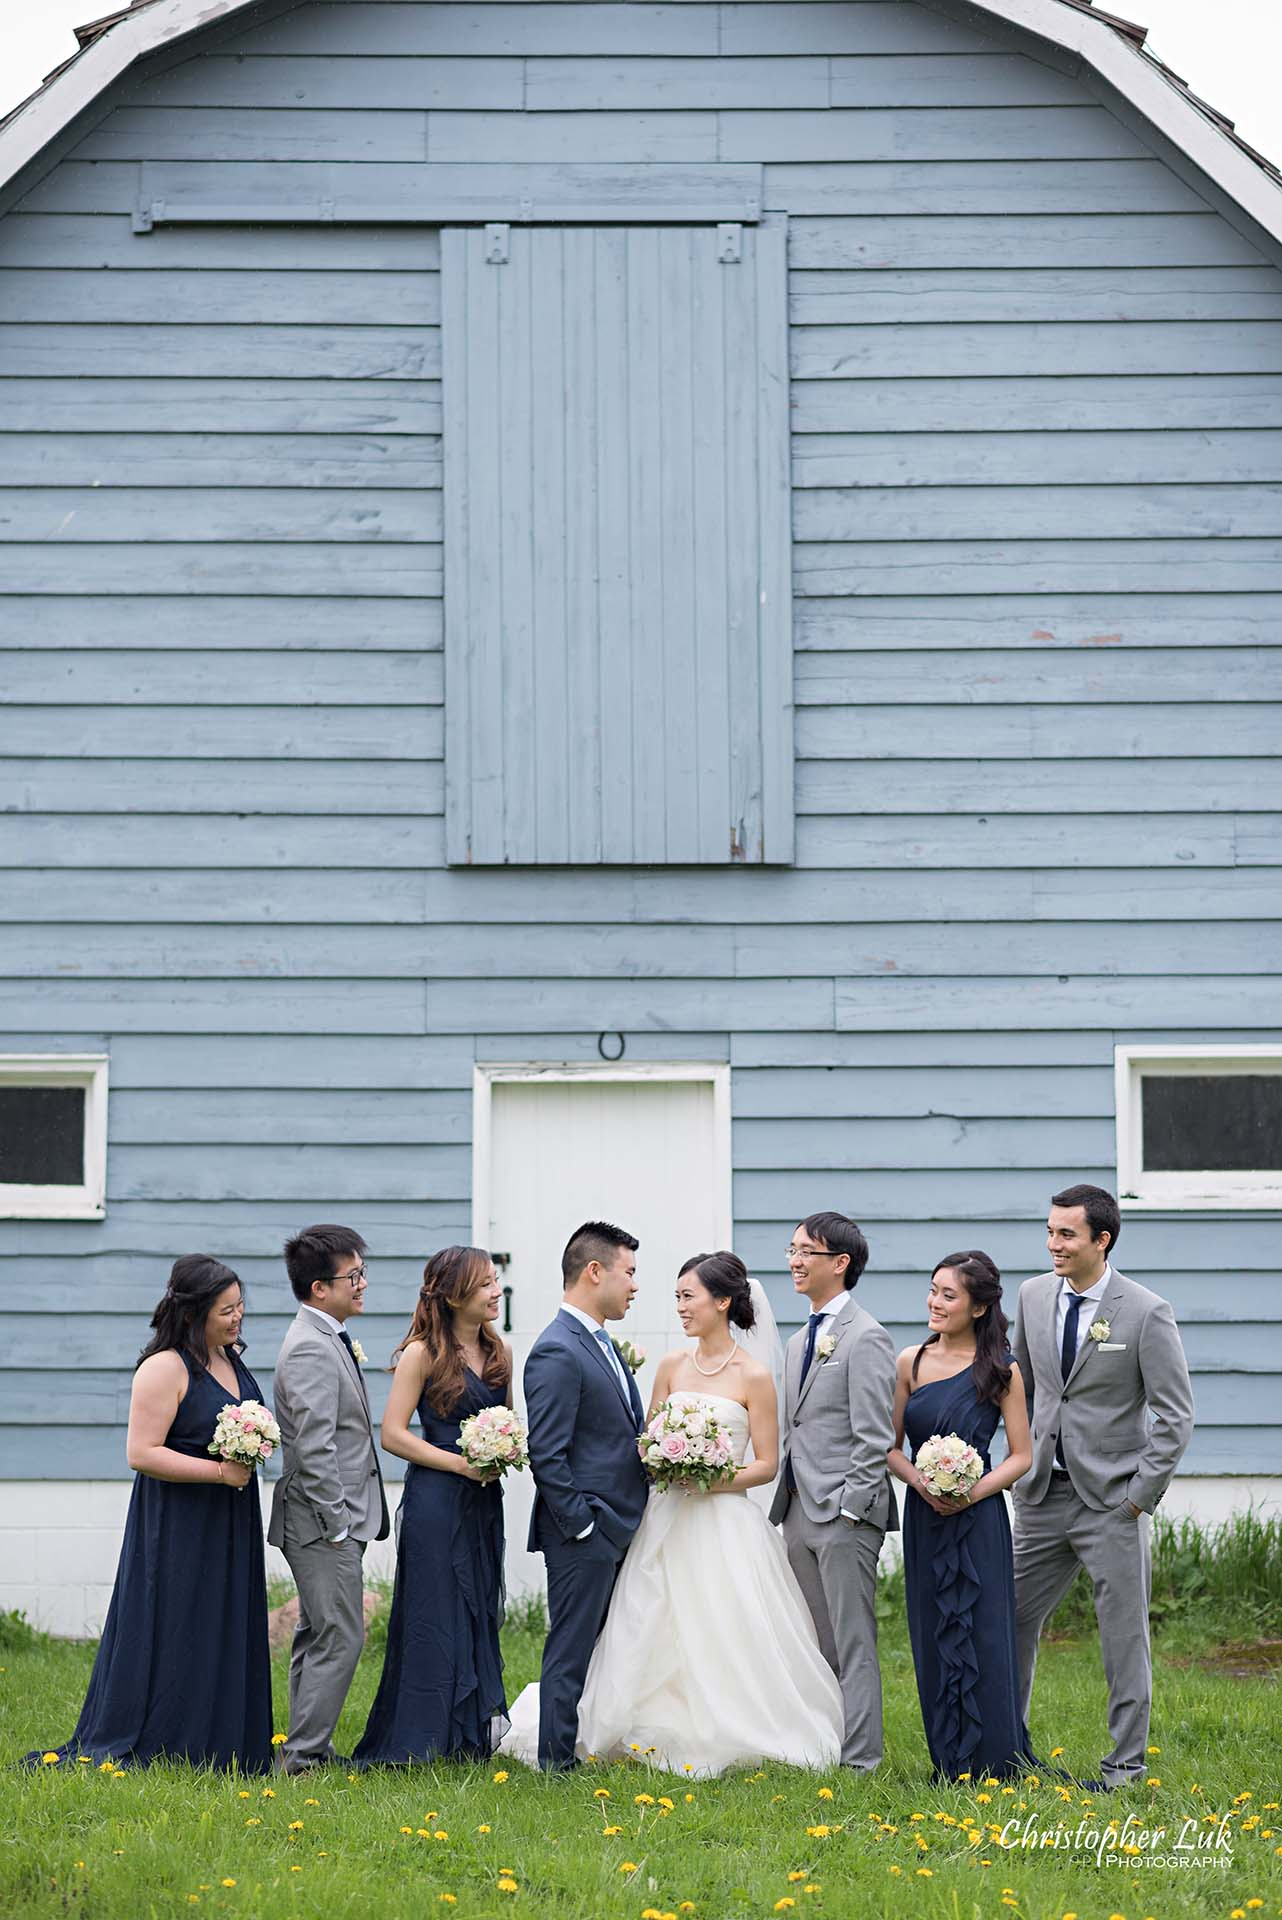 Christopher Luk Toronto Wedding Photographer Angus Glen Golf Club Markham Main Blue Barn Farm Historic Estate Building Together Natural Candid Photojournalistic Bride Groom Best Man Maid of Honour Bridal Party Groomsmen Bridesmaids Portrait